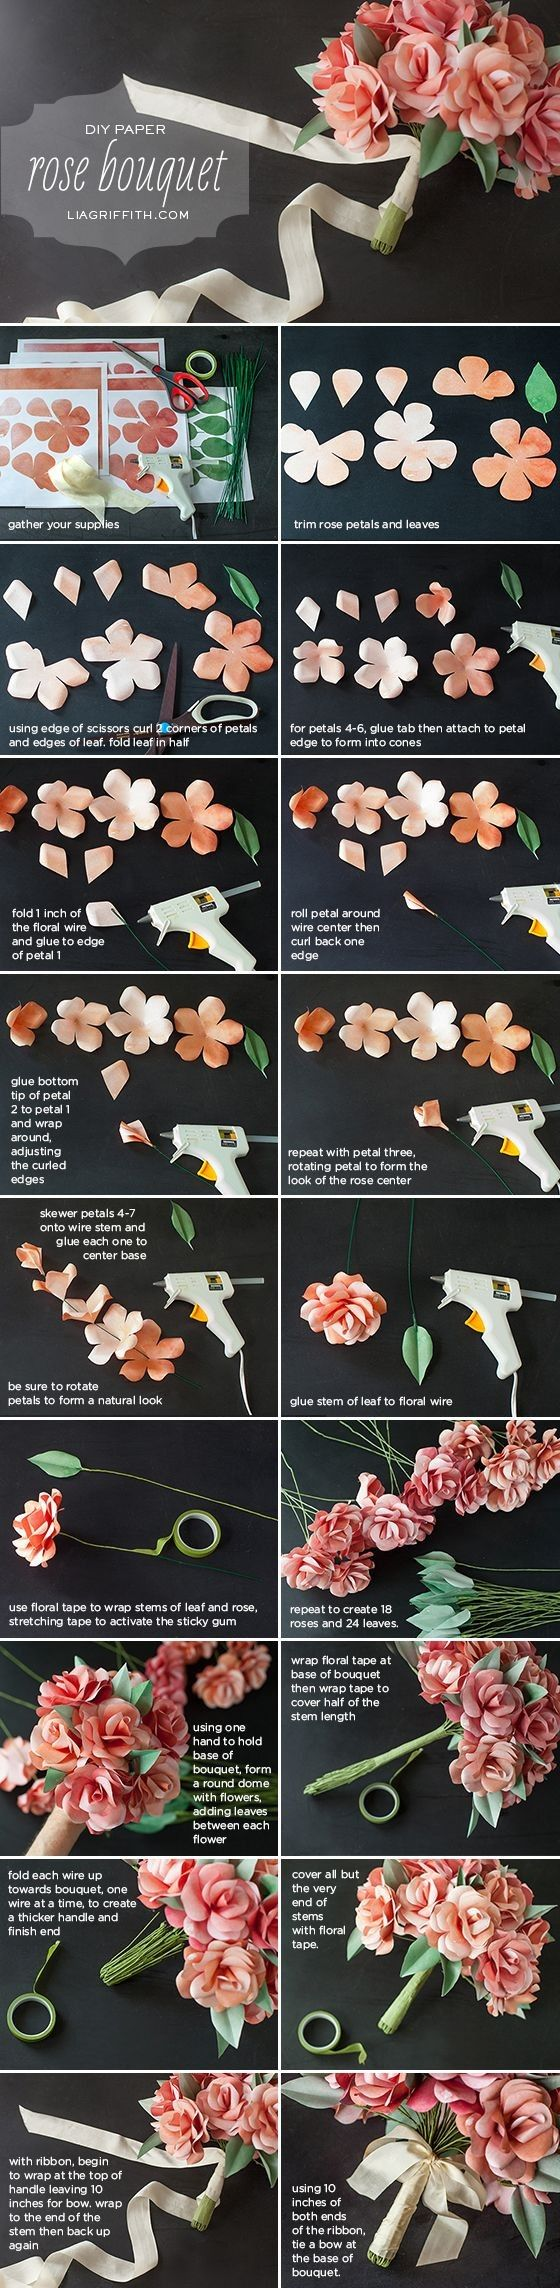 Where To Buy Diy Paper Tutorial Of Wedding Roses Flowers Bouquet